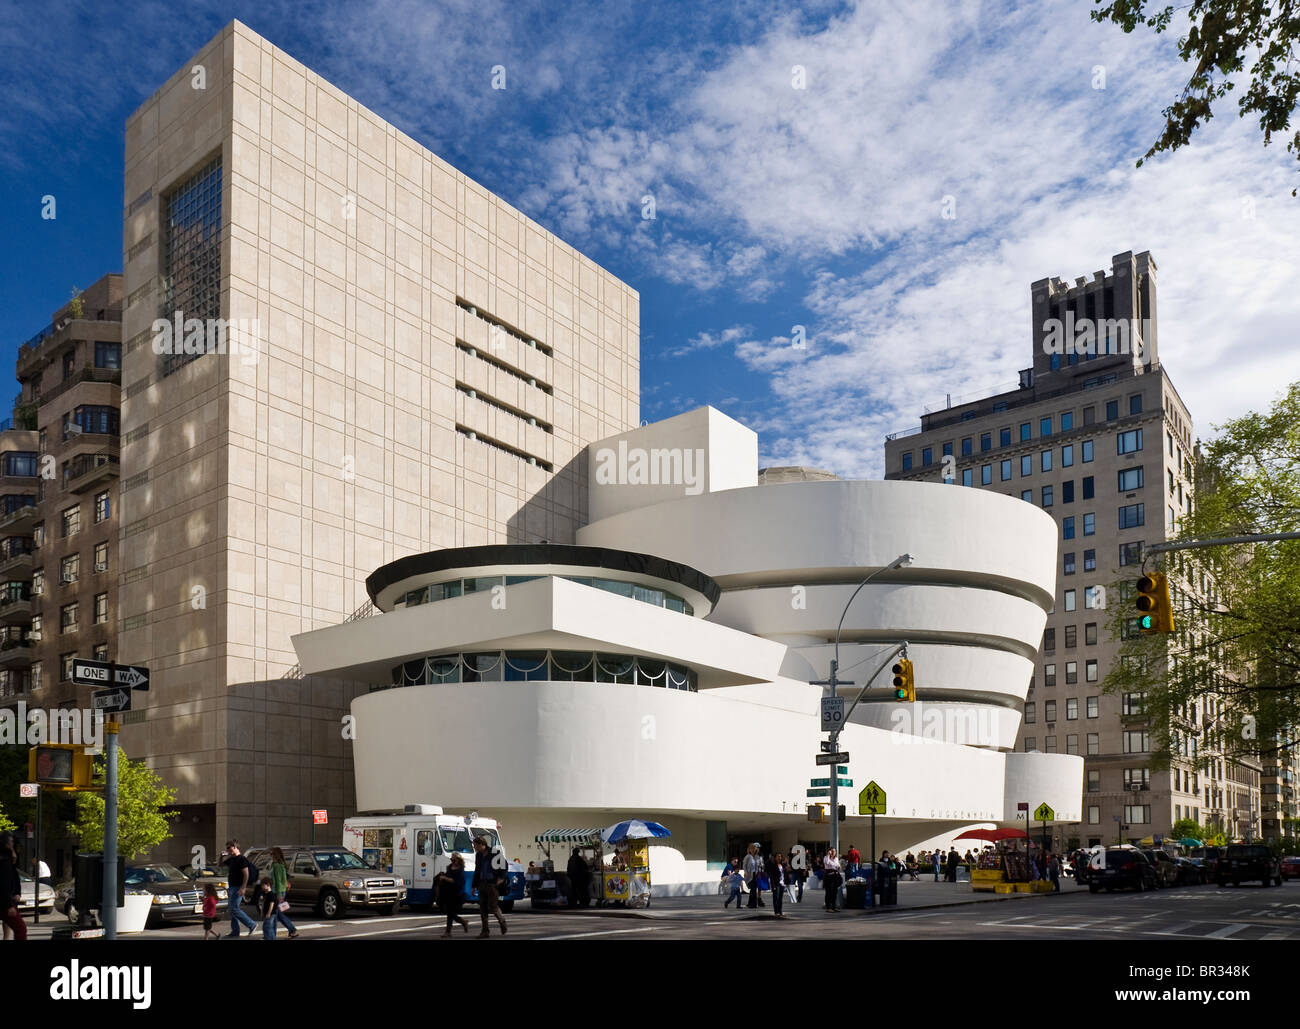 The Guggenheim Museum, New York City. Frank Lloyd Wright, Architect. - Stock Image